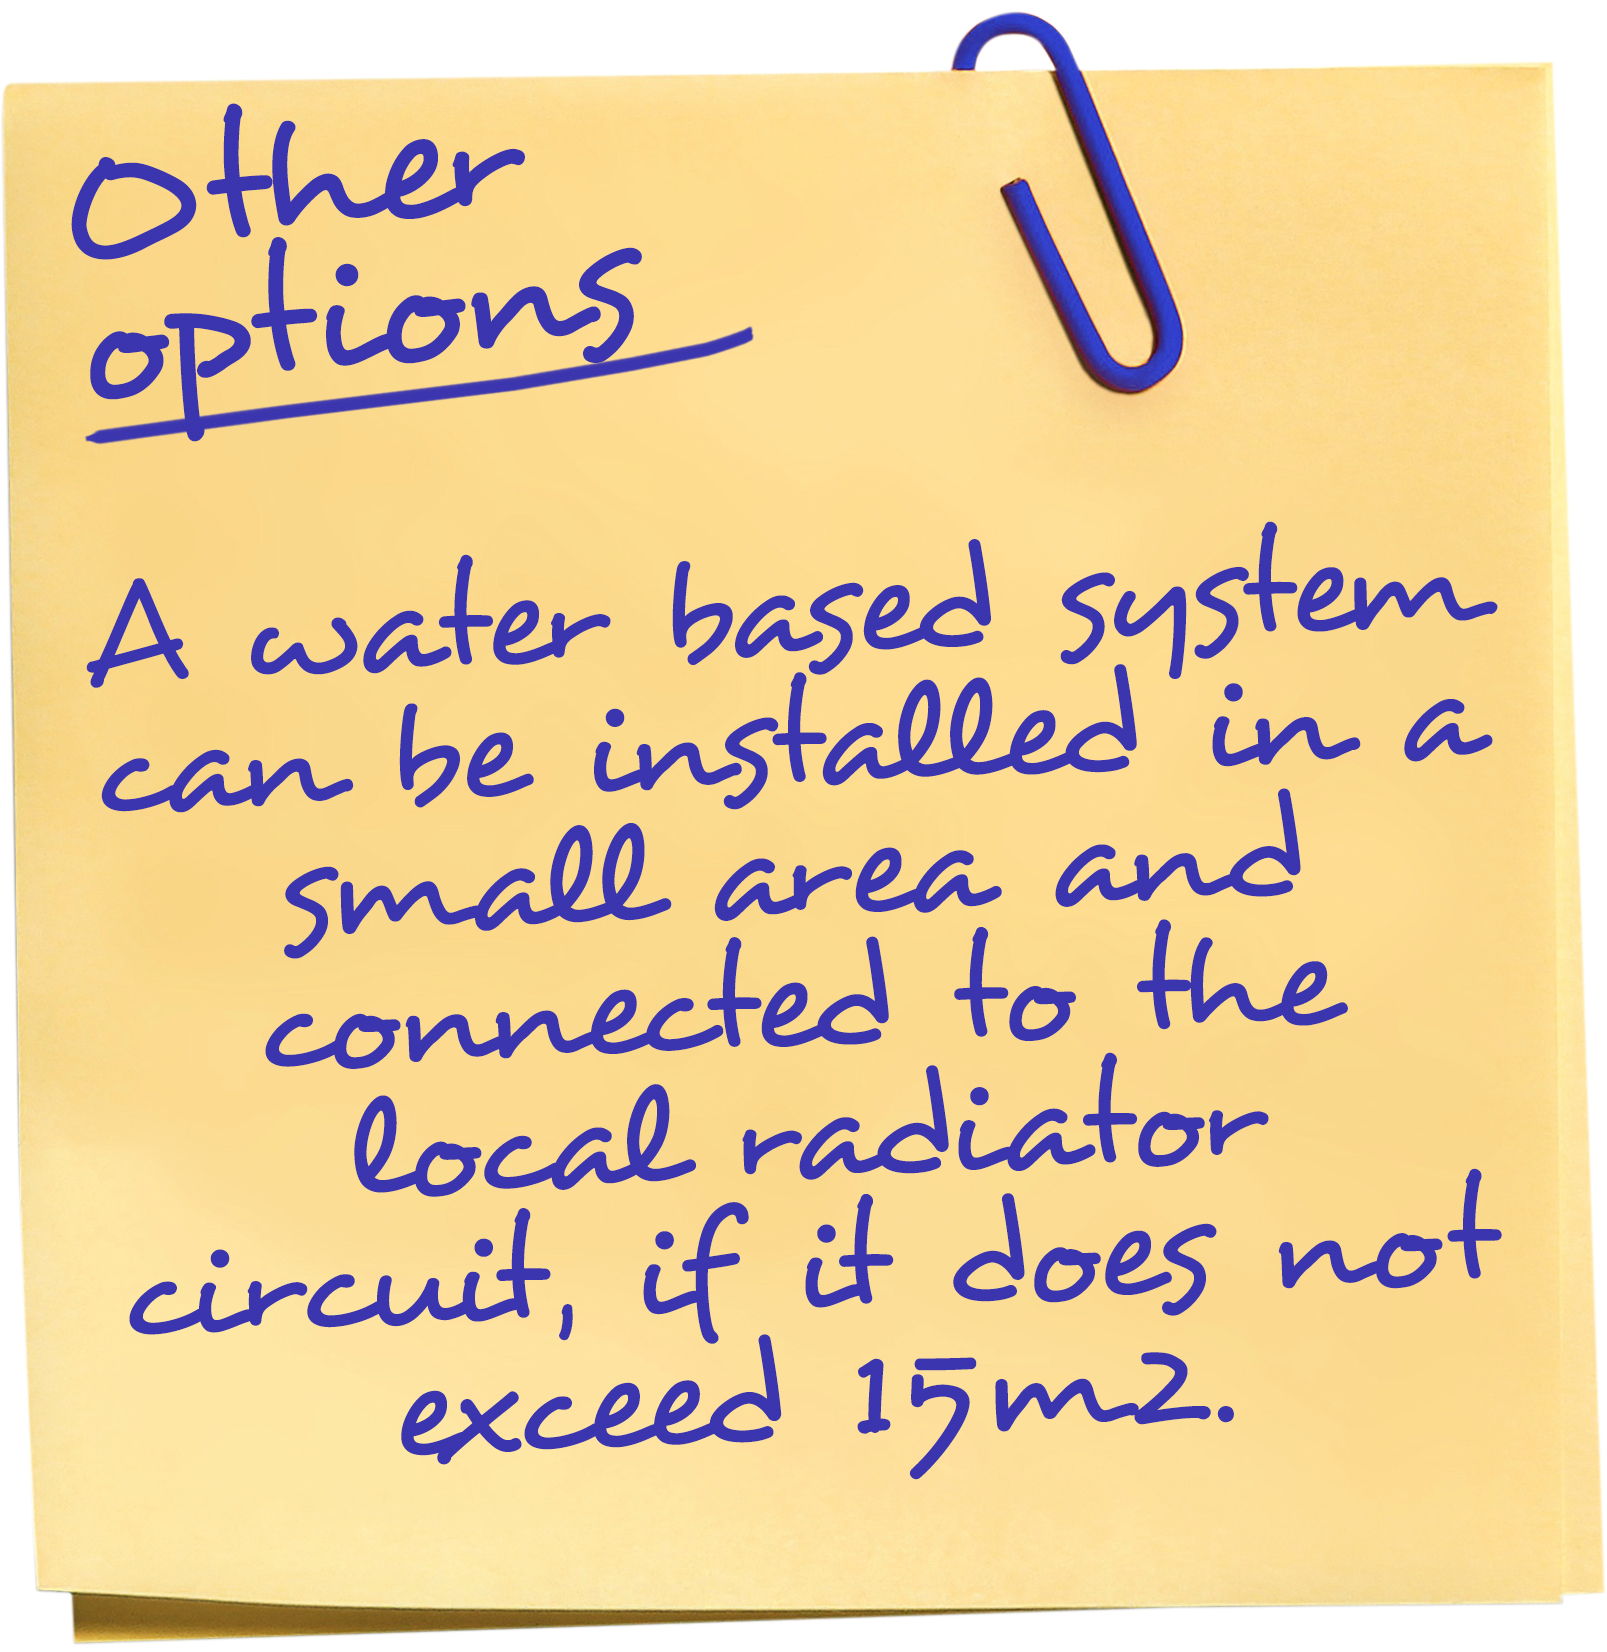 A water based system can be installed in a small area and connected to the local radiator circuit, if it does not exceed 15m2.